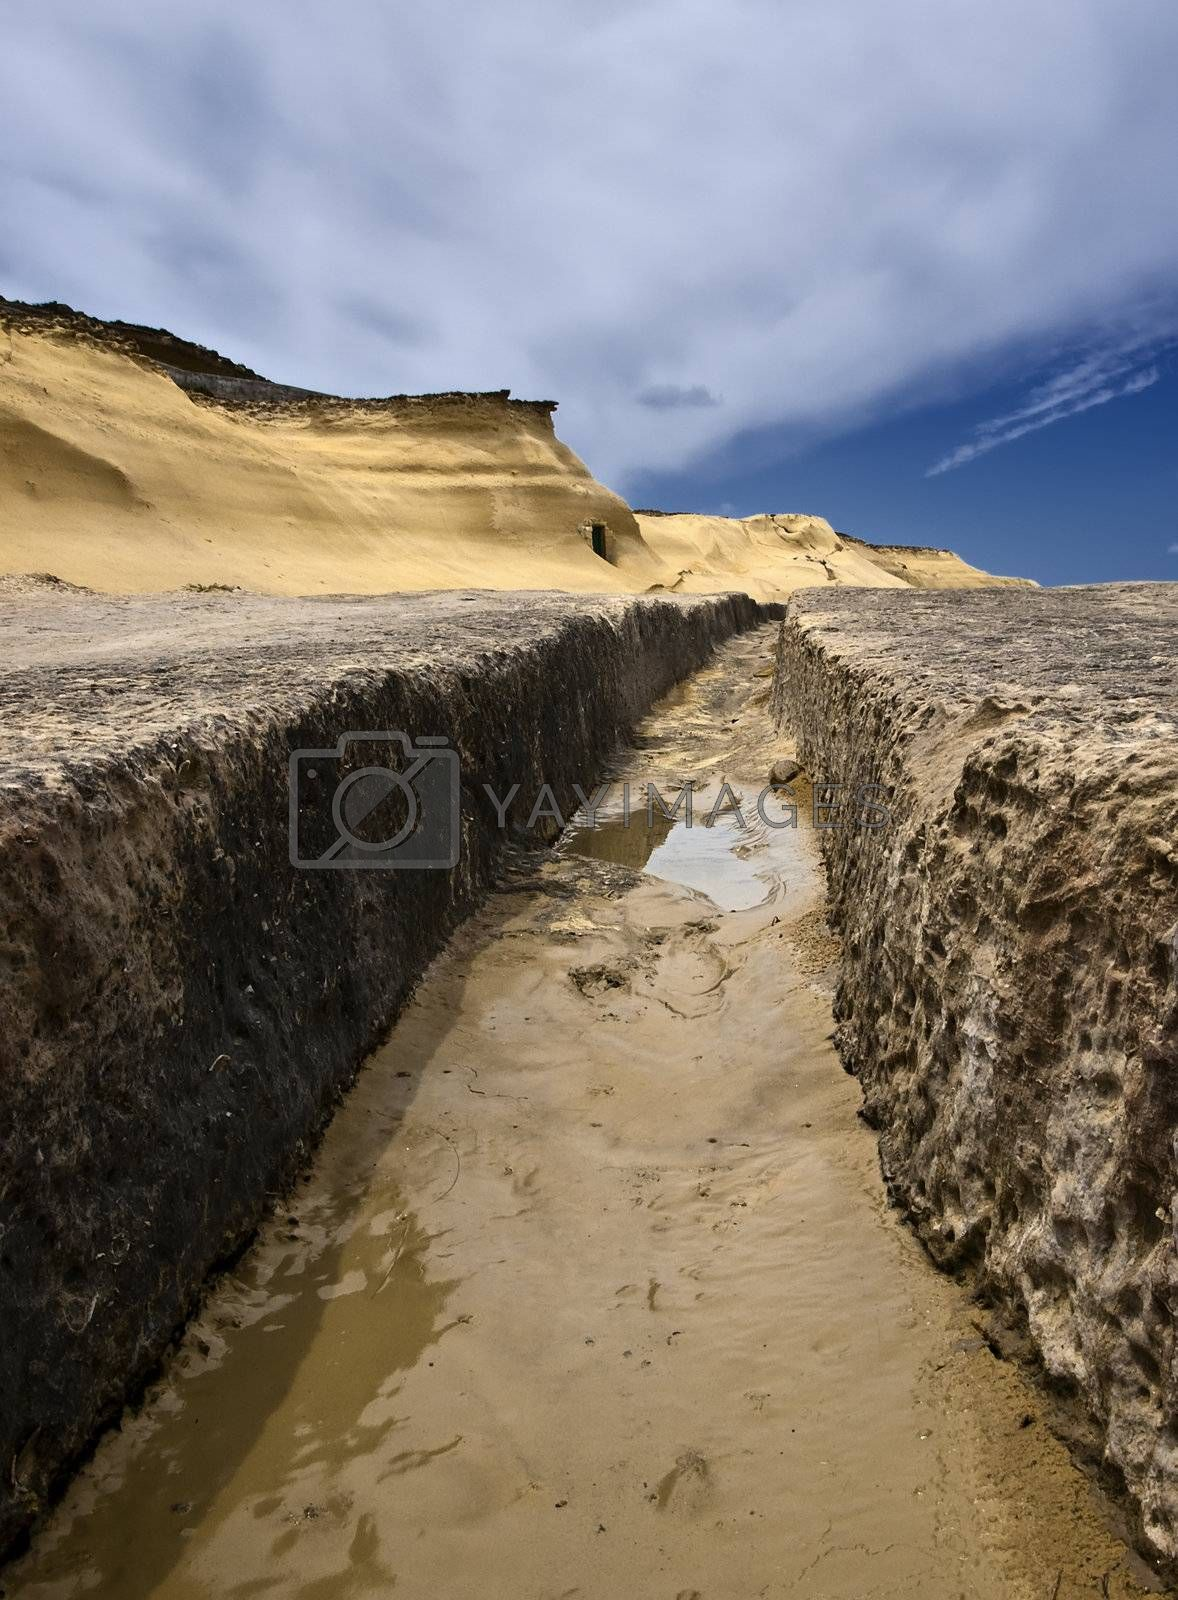 Royalty free image of Valley of Mystery by PhotoWorks